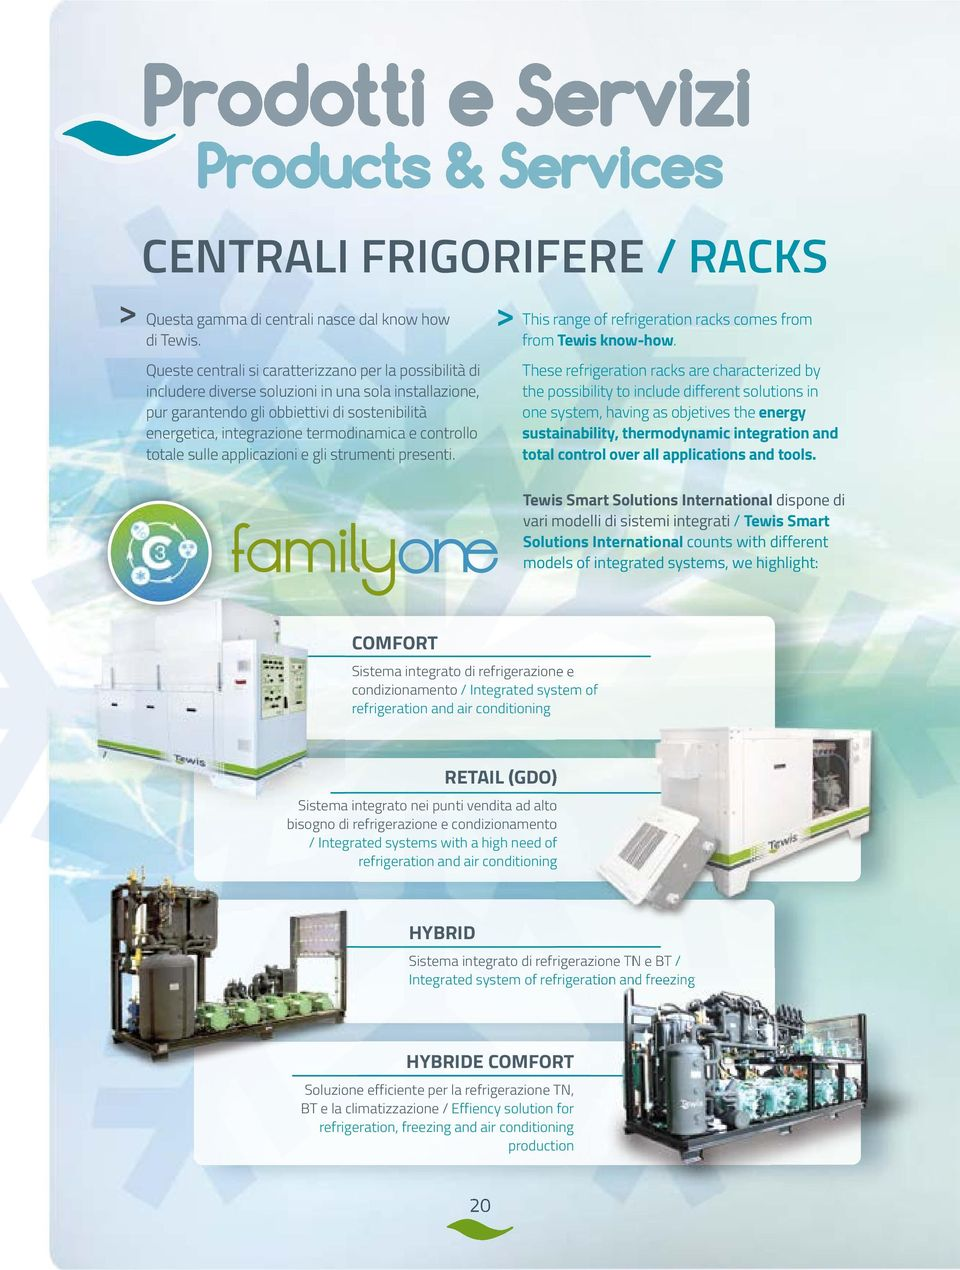 controllo totale sulle applicazioni e gli strumenti presenti. This range of refrigeration racks comes from from Tewis know-how.